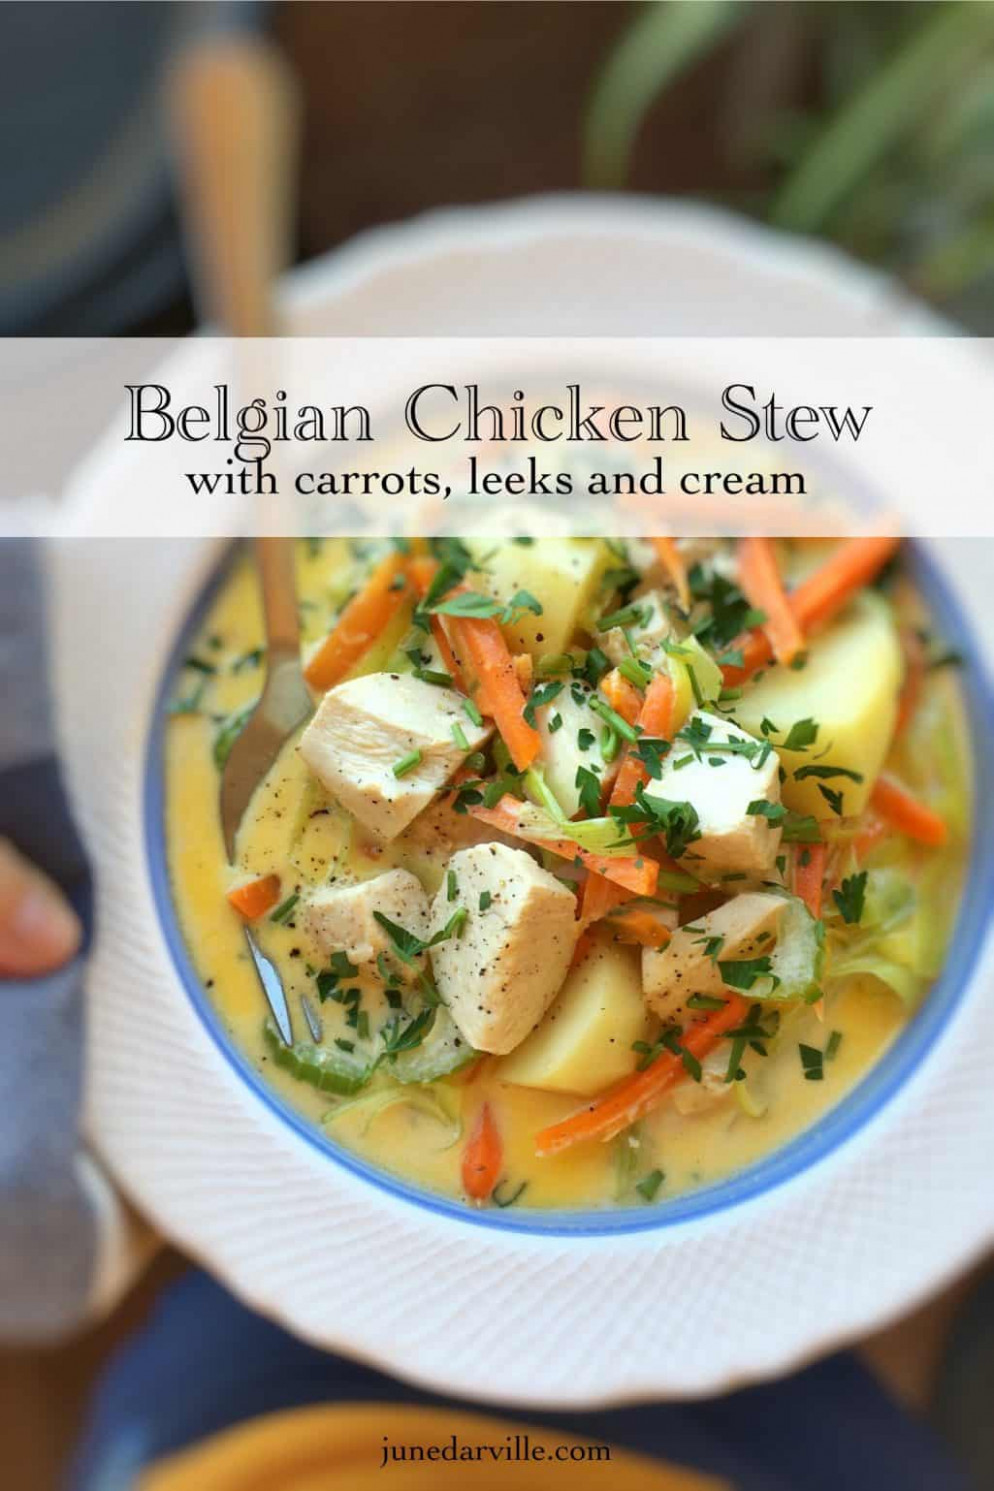 Waterzooi (Belgian Chicken Stew Recipe) | Simple. Tasty. Good